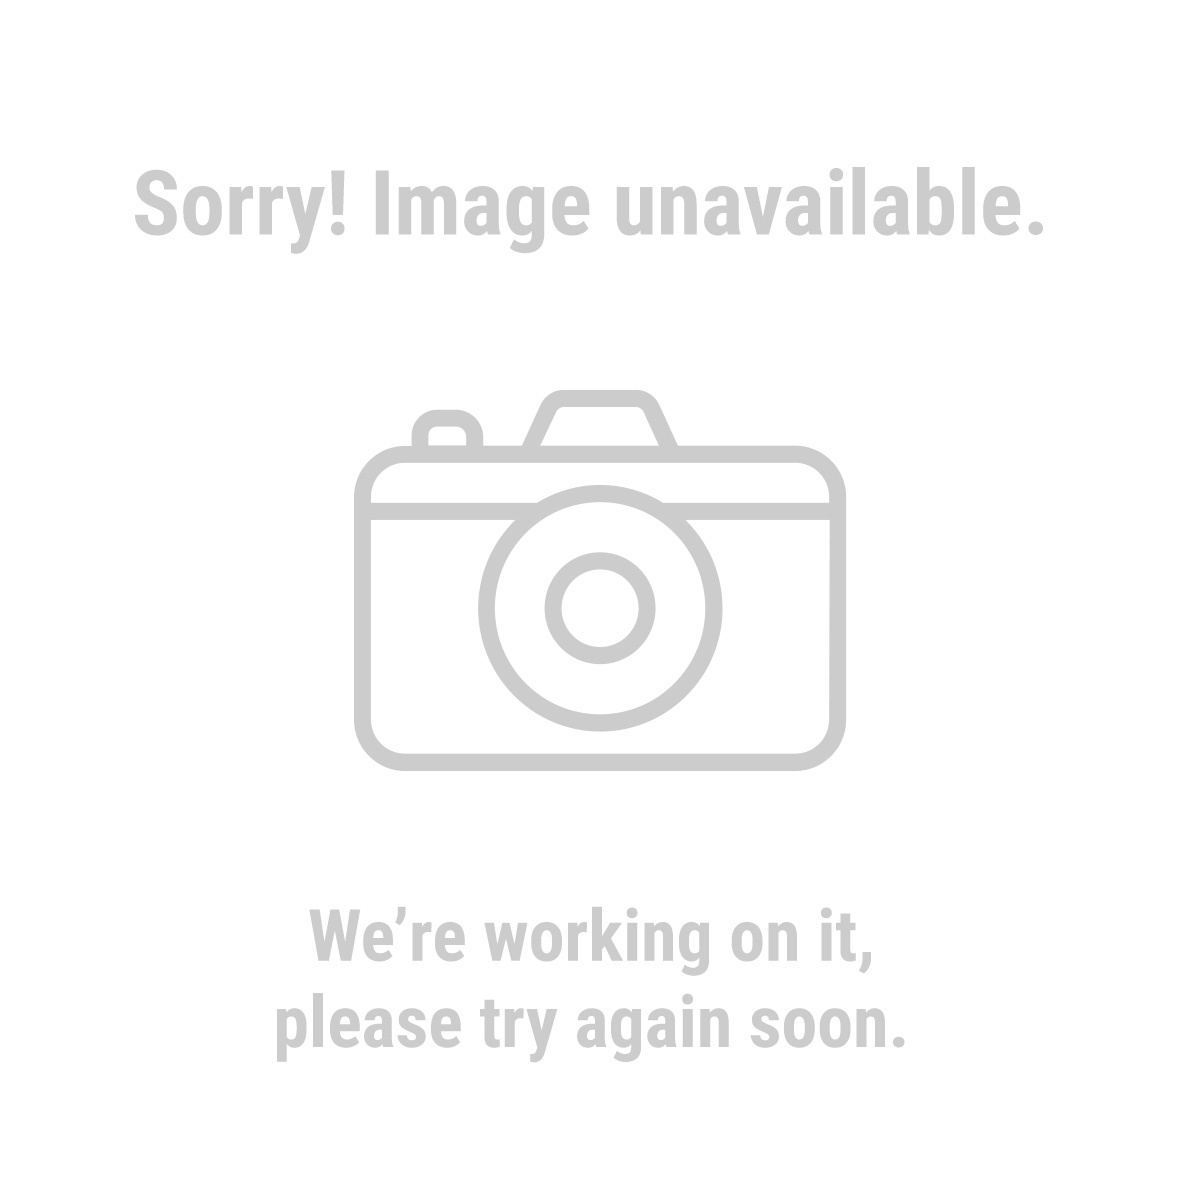 Krause & Becker 62604 4 in. Professional Paint Brush